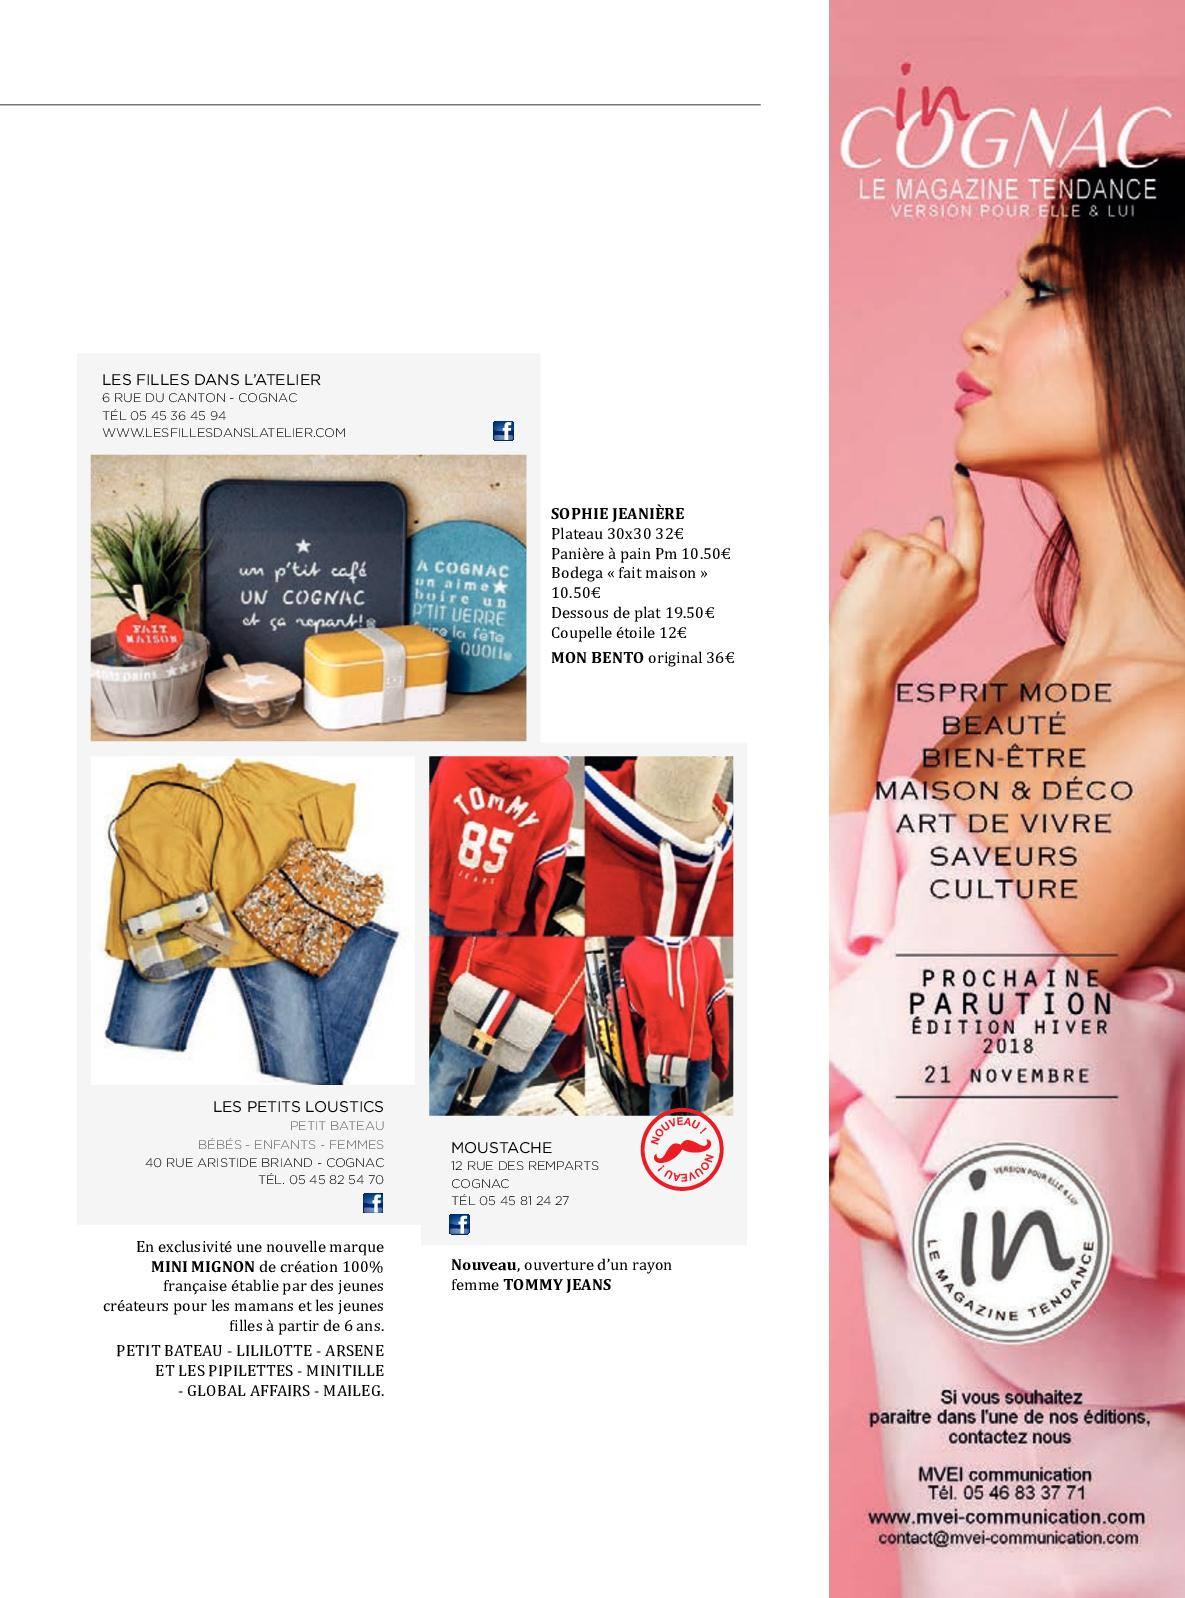 Magazine In Cognac Automne 2018 - CALAMEO Downloader 35d2a669ce3